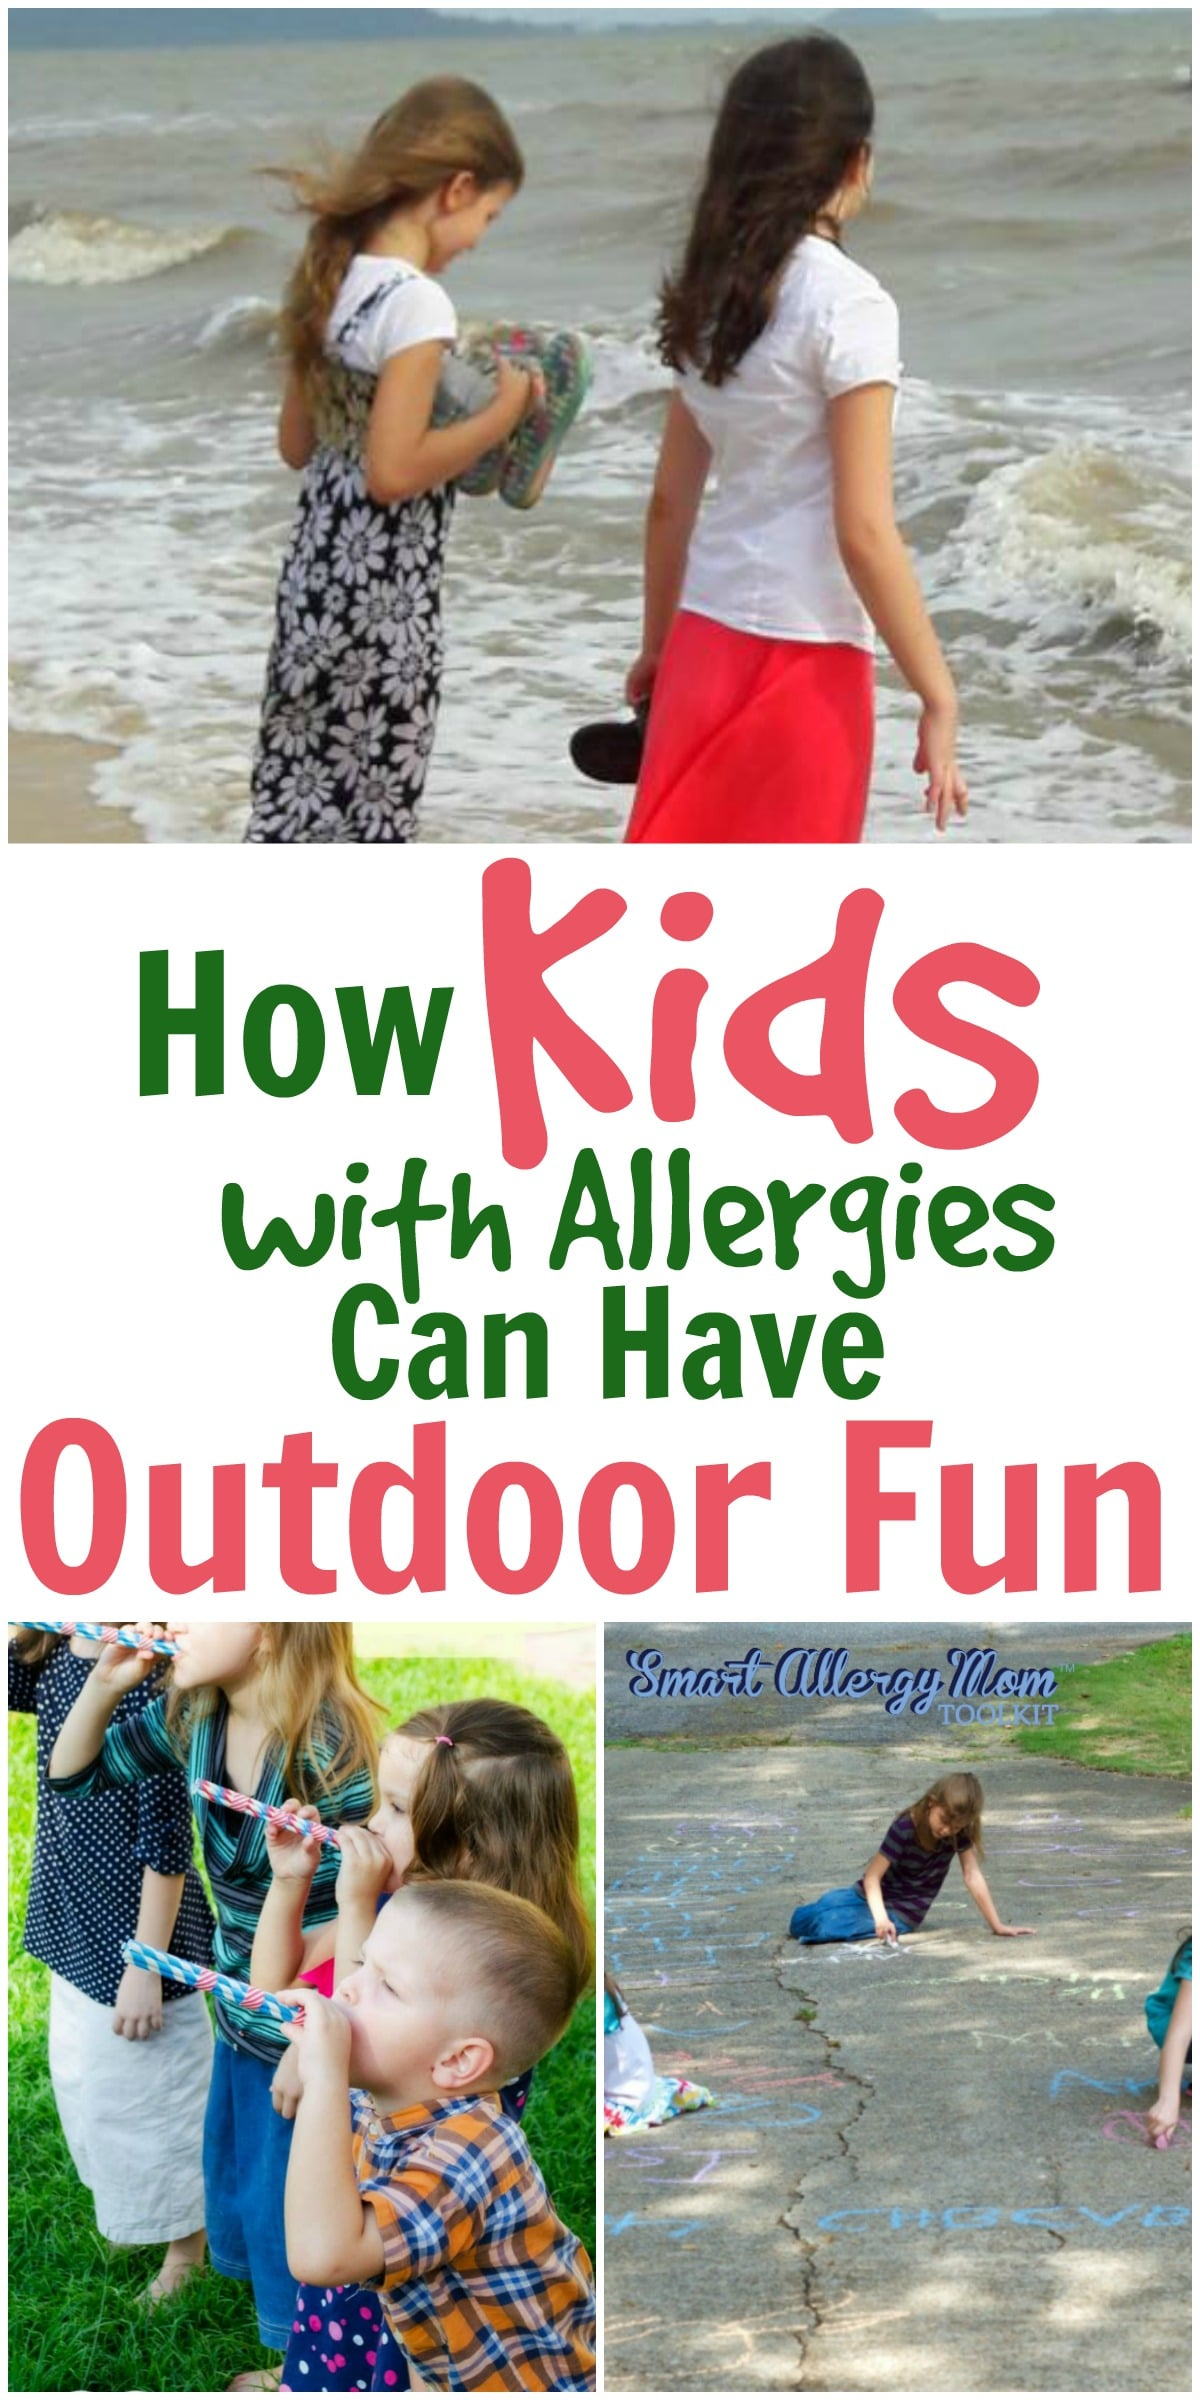 How Kids with Allergies Can Have Outdoor Fun · Pint sized Treasures